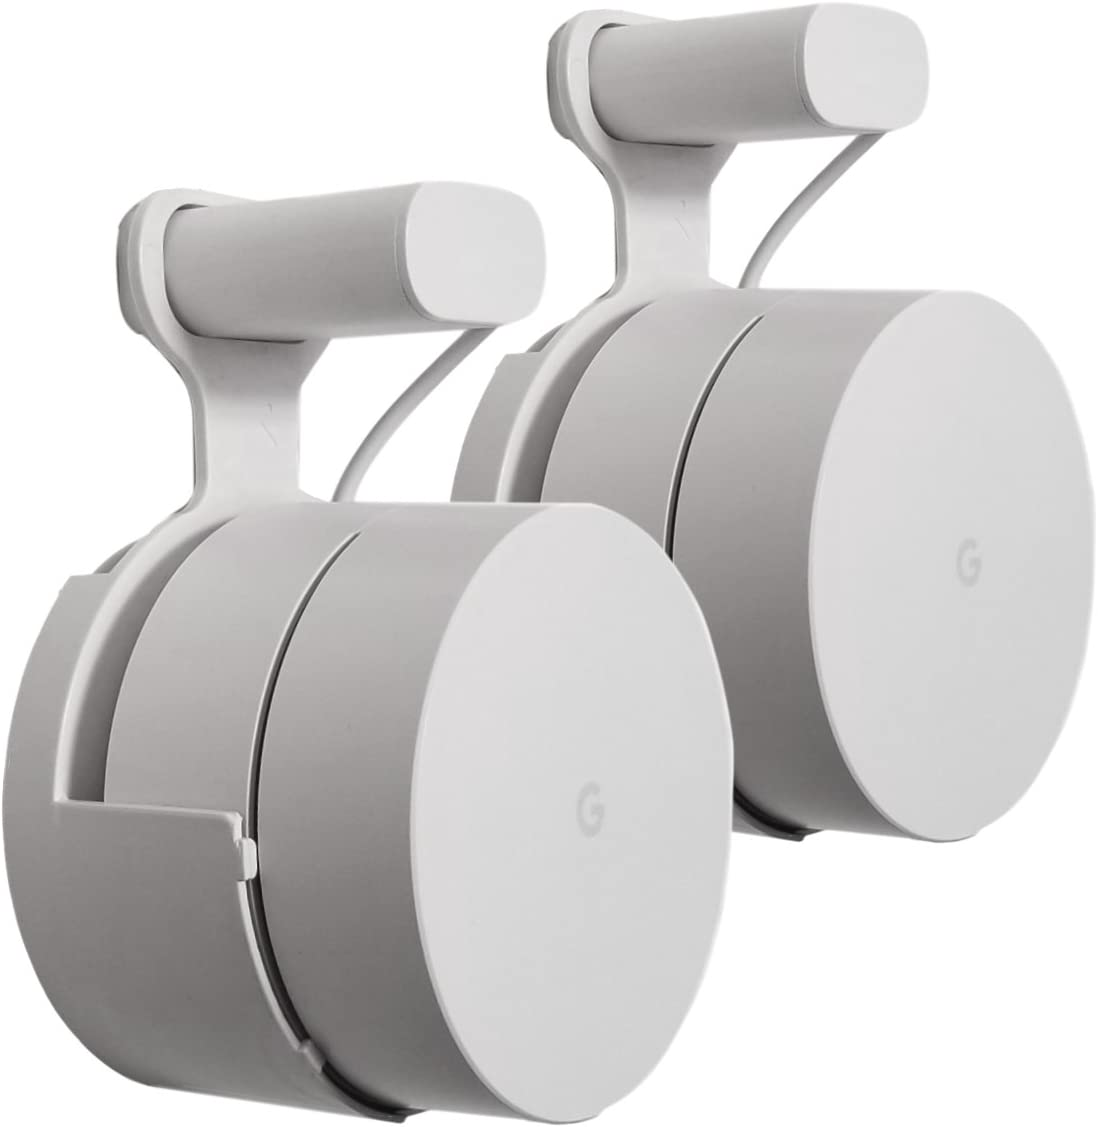 Dot Genie Google WiFi Outlet Holder Mount: [Original and Best] USA Made - The Simplest Wall Mount Holder Stand Bracket for Google WiFi Routers and Beacons - No Messy Screws! (2-Pack)